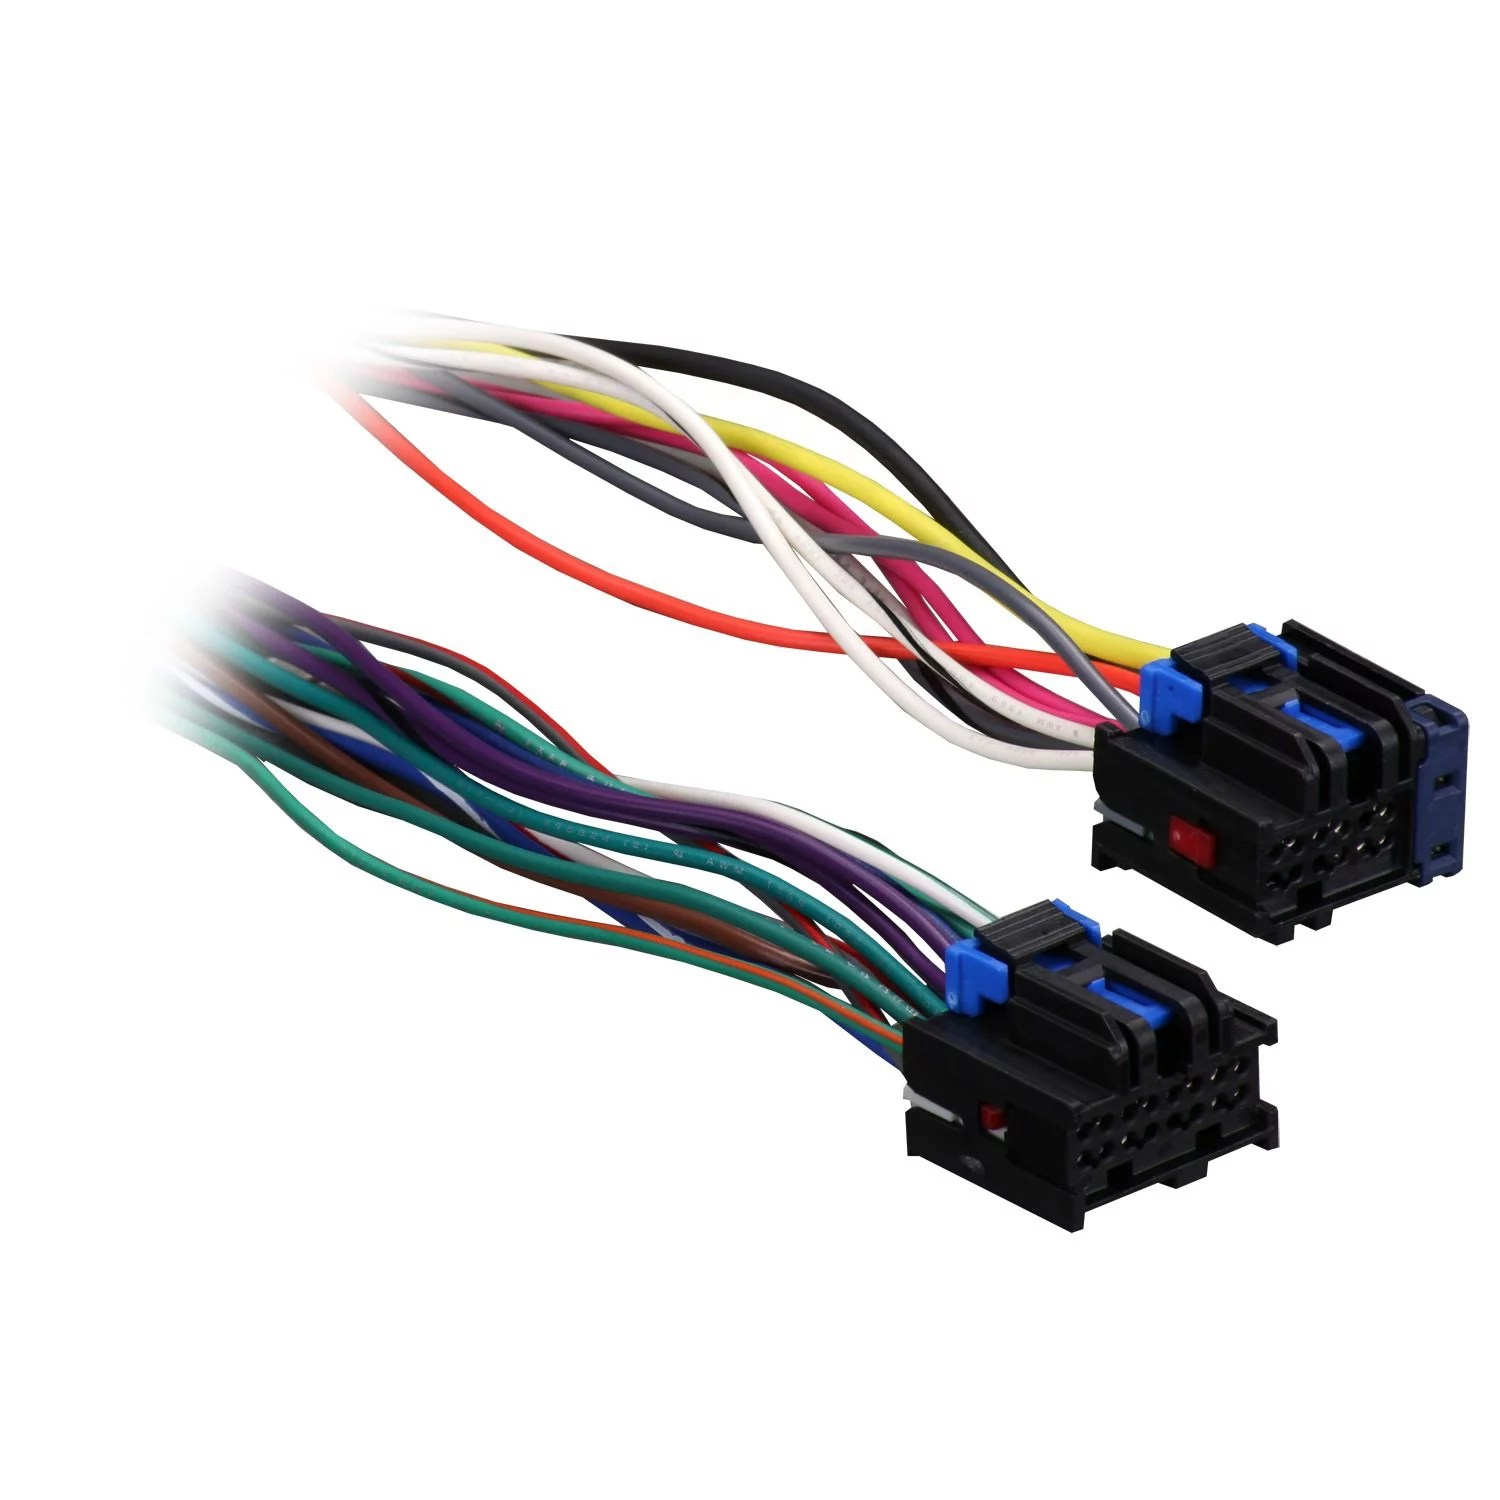 small resolution of jvc kd r300 wiring harness adapter today wiring diagram update jvc kd r300 wiring diagram jvc kd r300 wiring harness